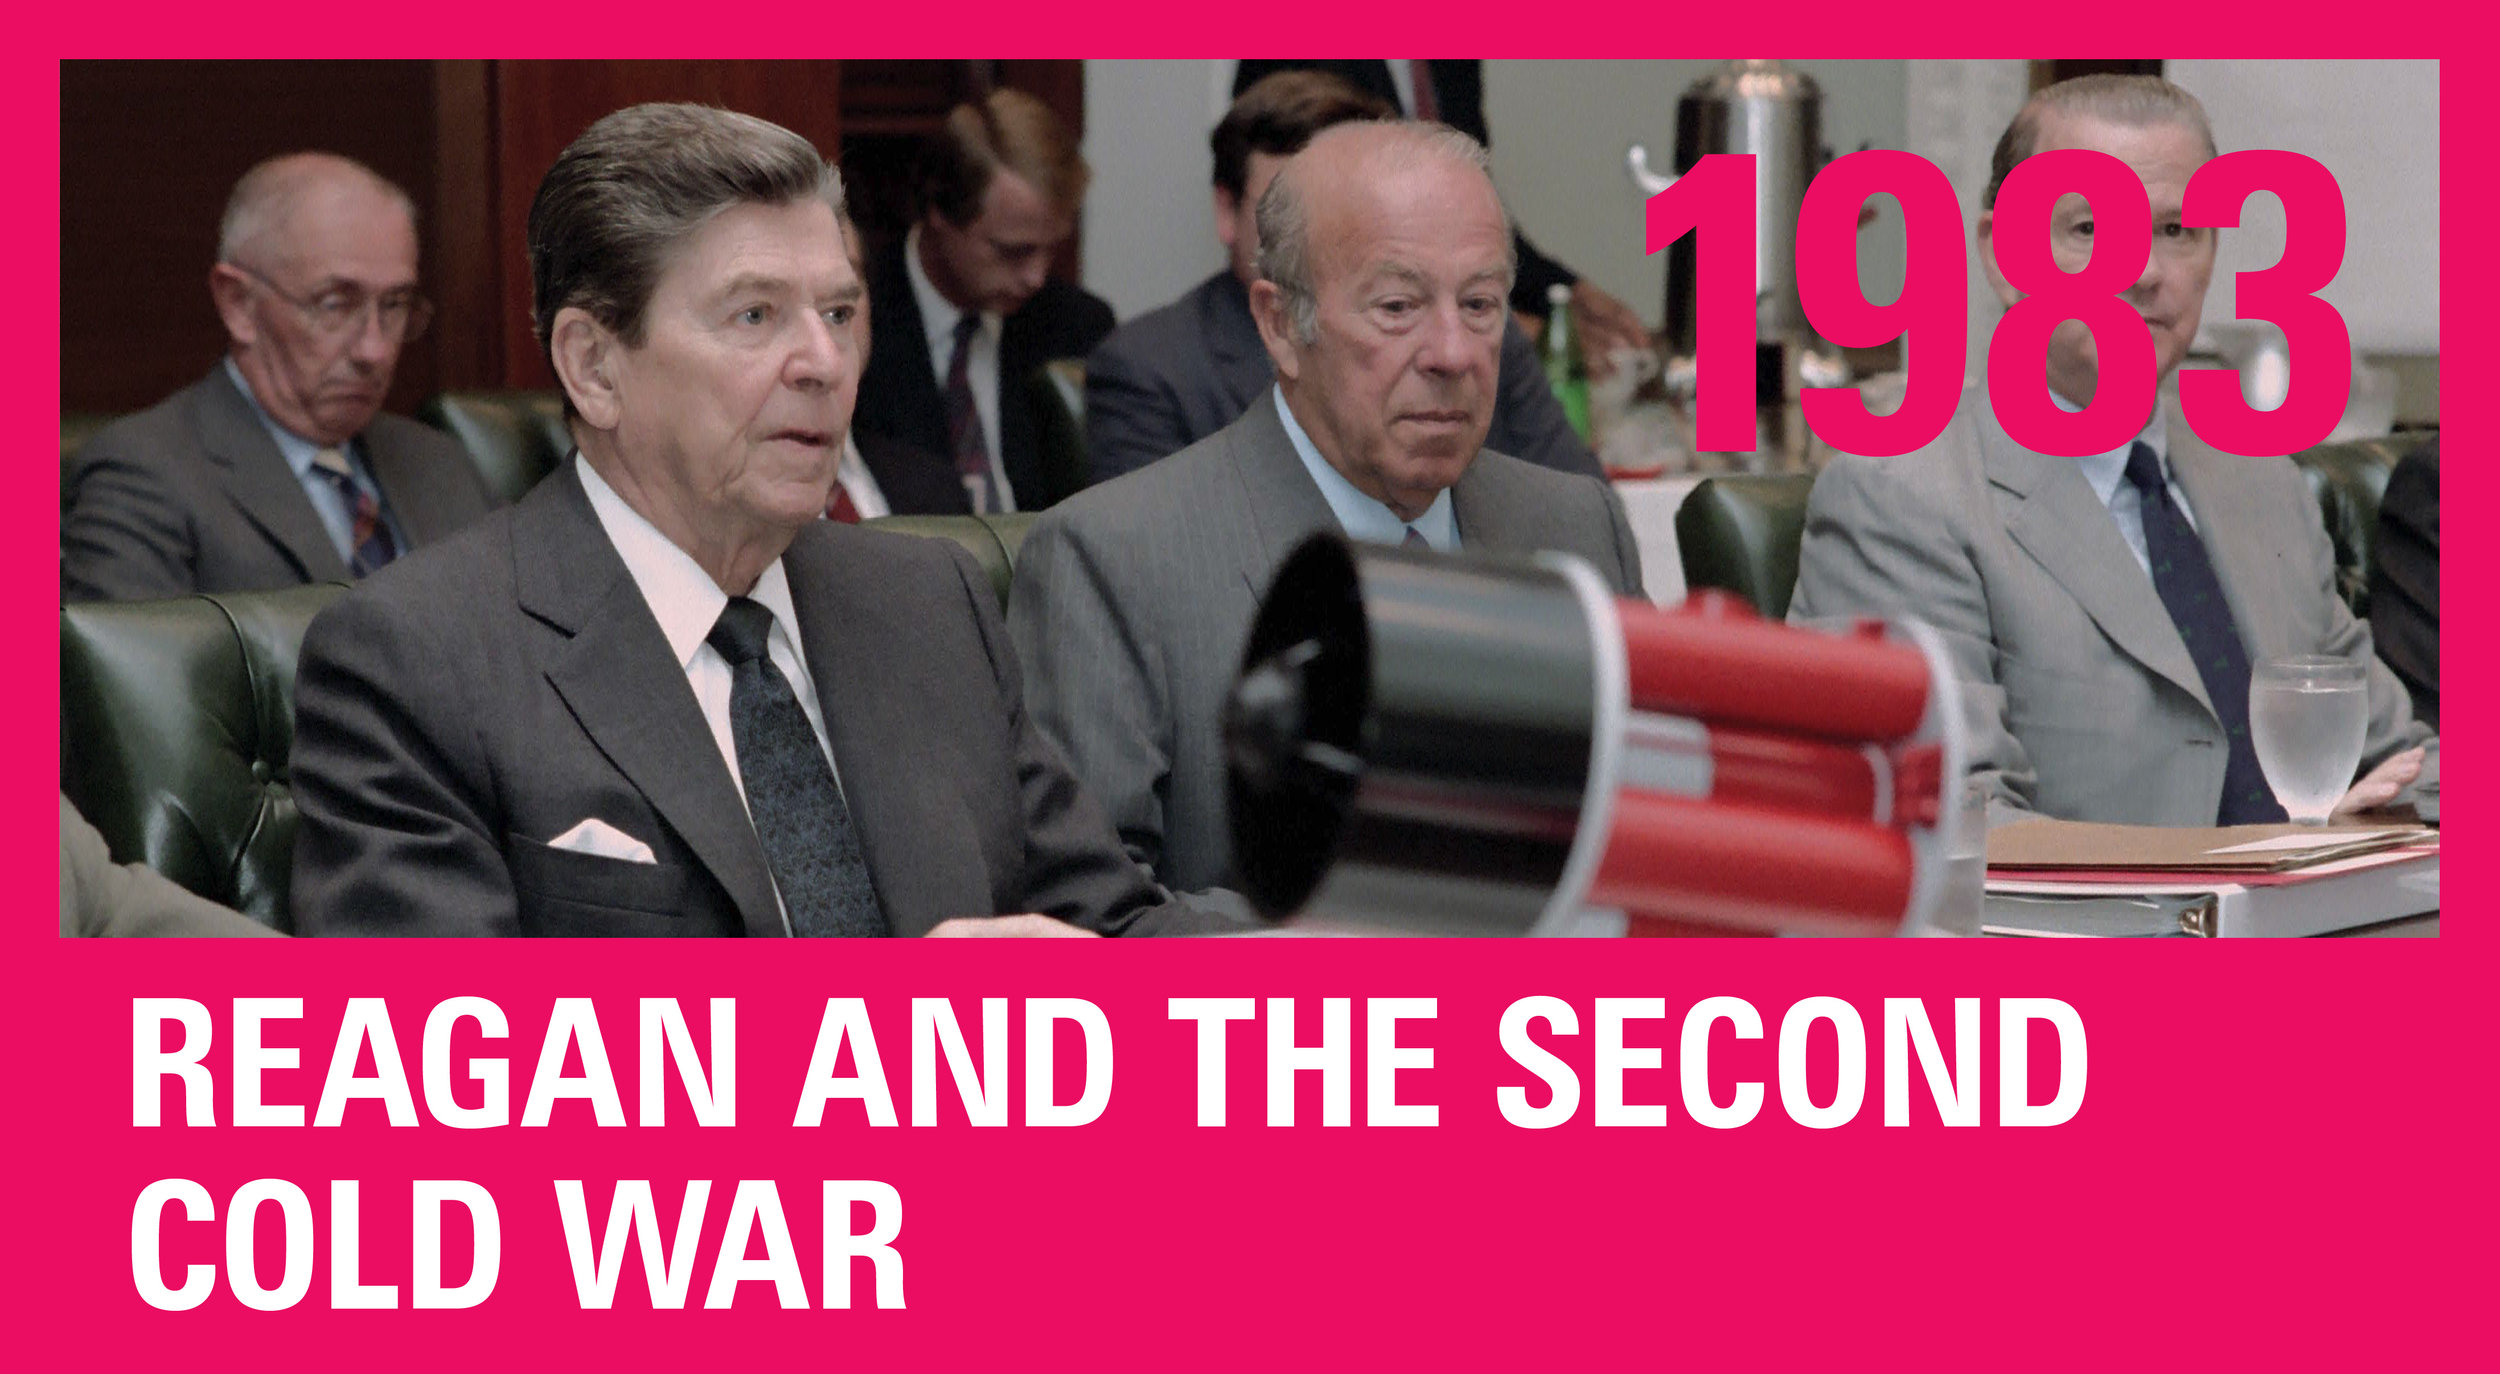 President Reagan, Secretary of State George Shultz, and James Baker, Reagan's chief-of-staff, in a meeting on the Strategic Defense Initiative. SDI was a announced by President Reagan on March 23, 1983, before a national TV audience. It wanted to use ground and space-based systems to protect the U.S. from attack by strategic nuclear ballistic missiles. The initiative focused on strategic defense rather than the prior strategic offense doctrine of mutual assured destruction (MAD).